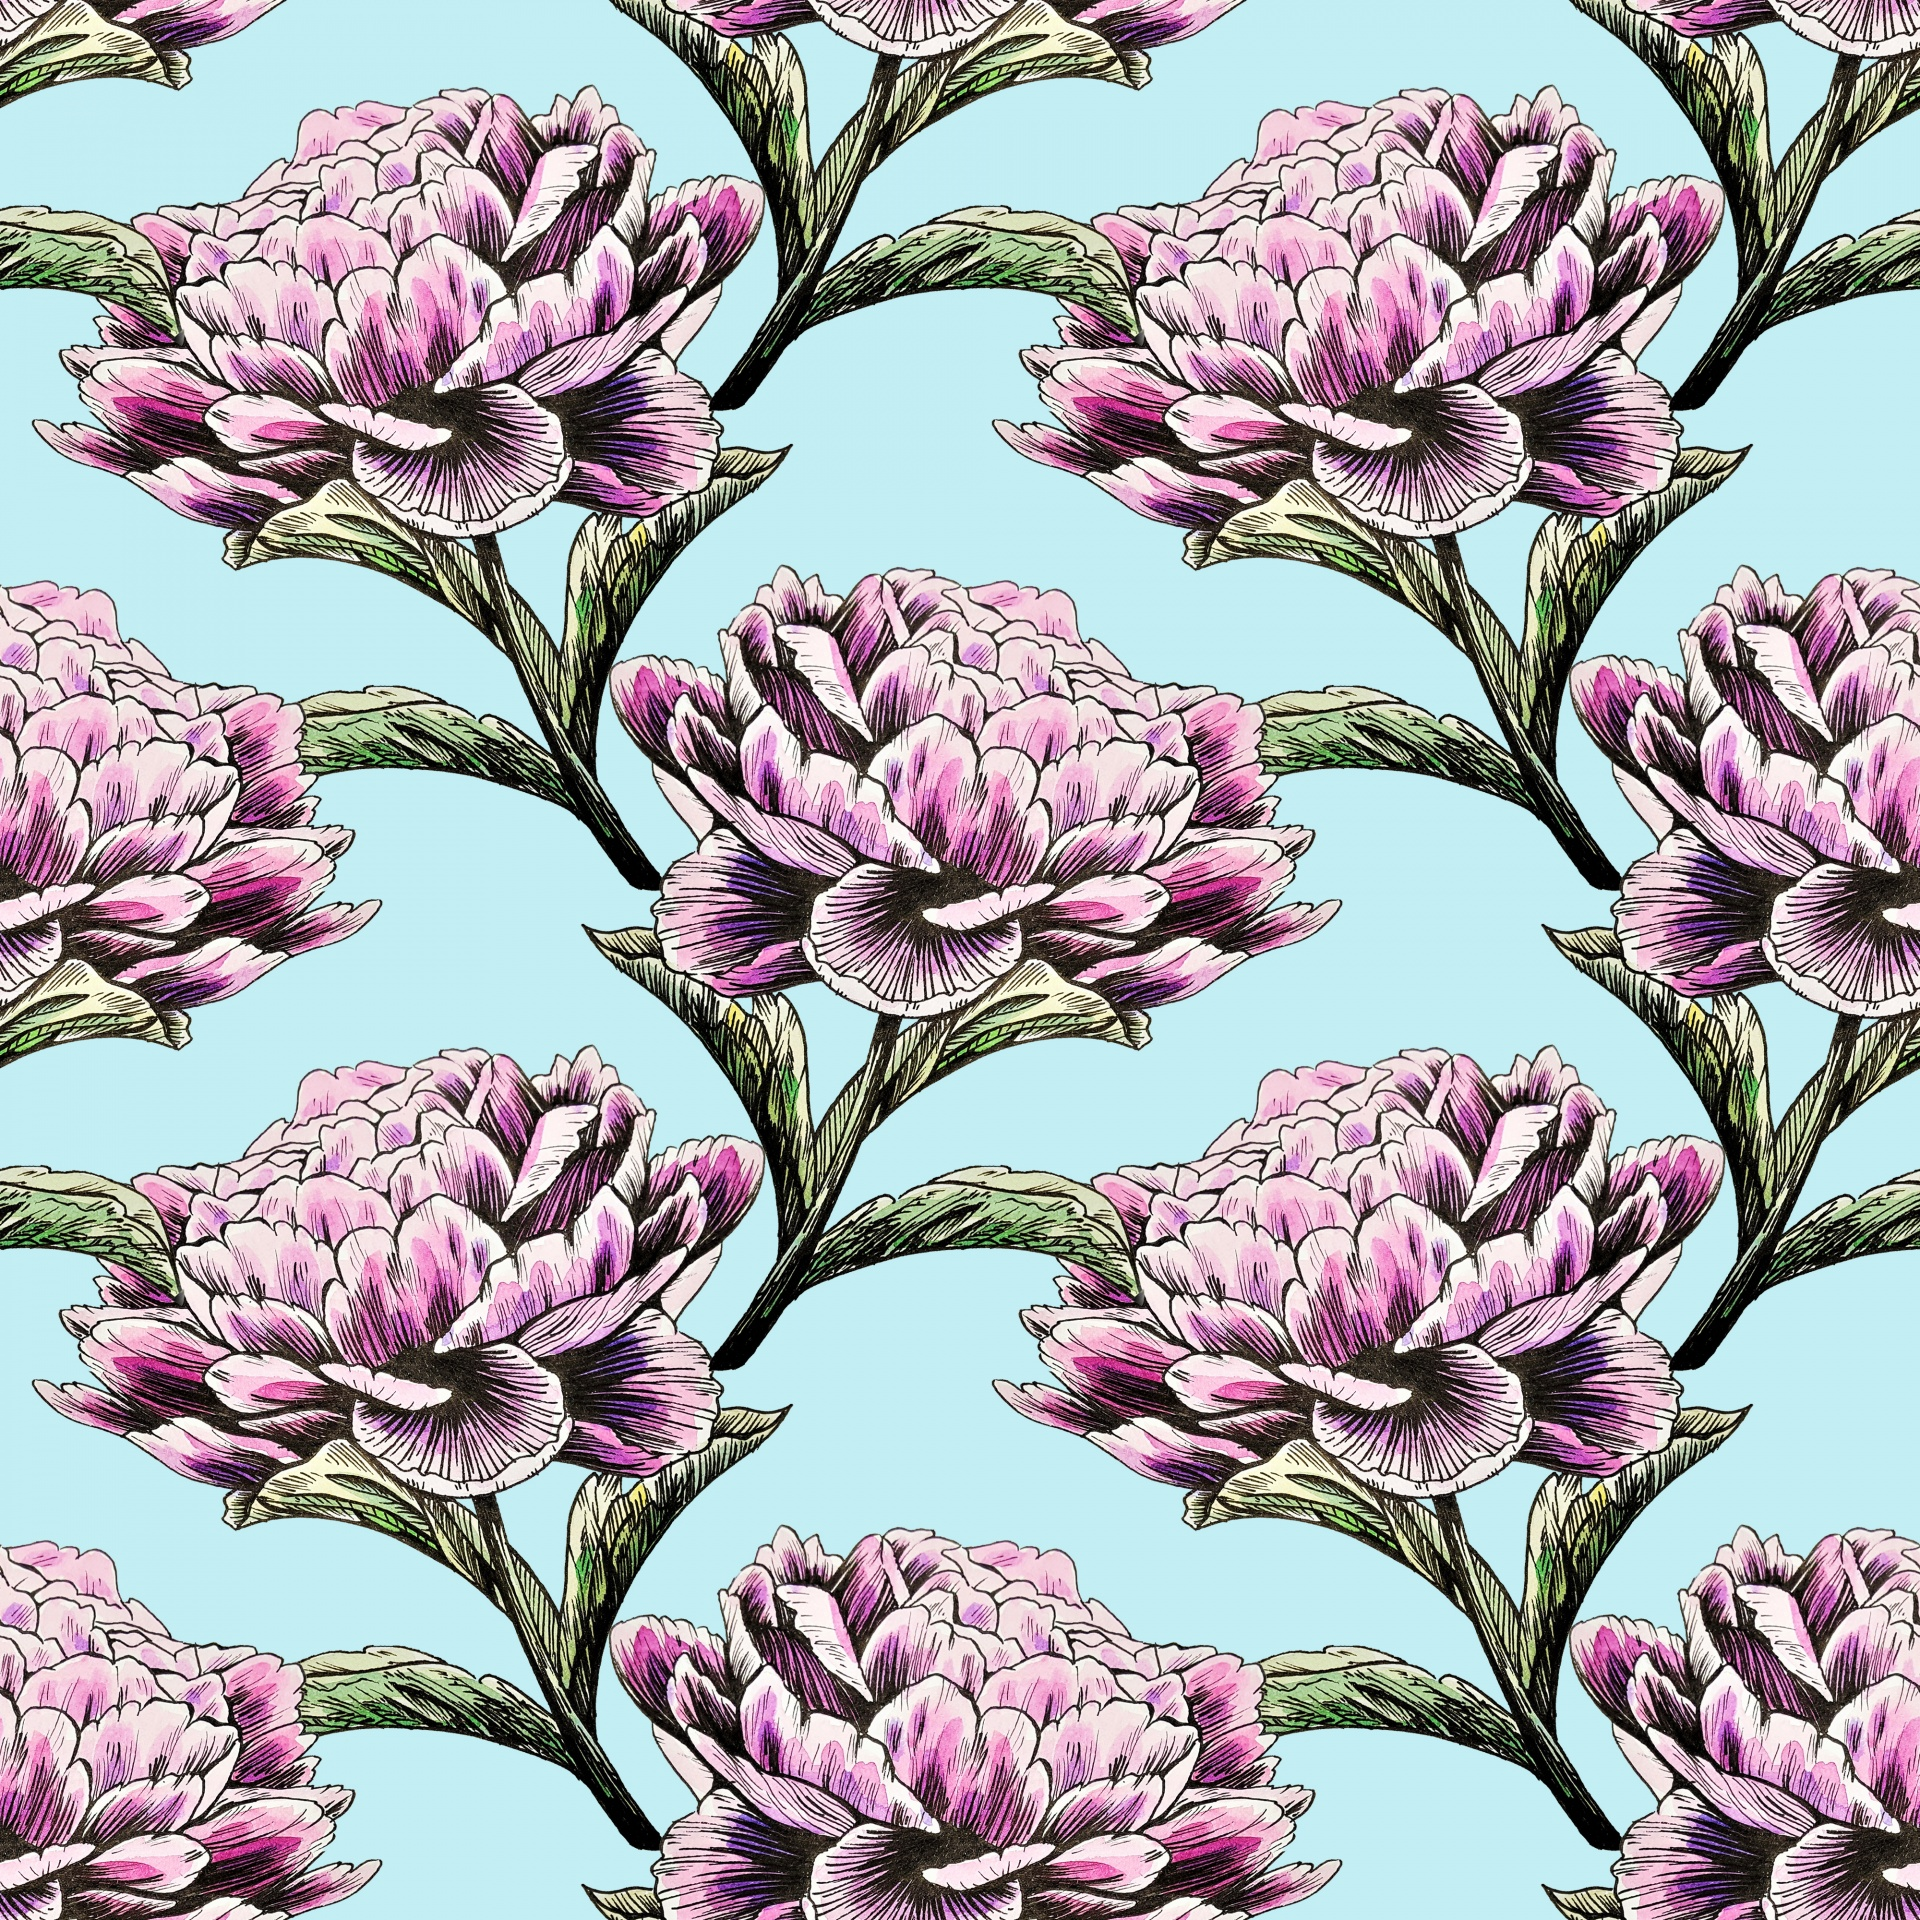 Flowers Floral Background Peony Peonies Free Image From Needpix Com